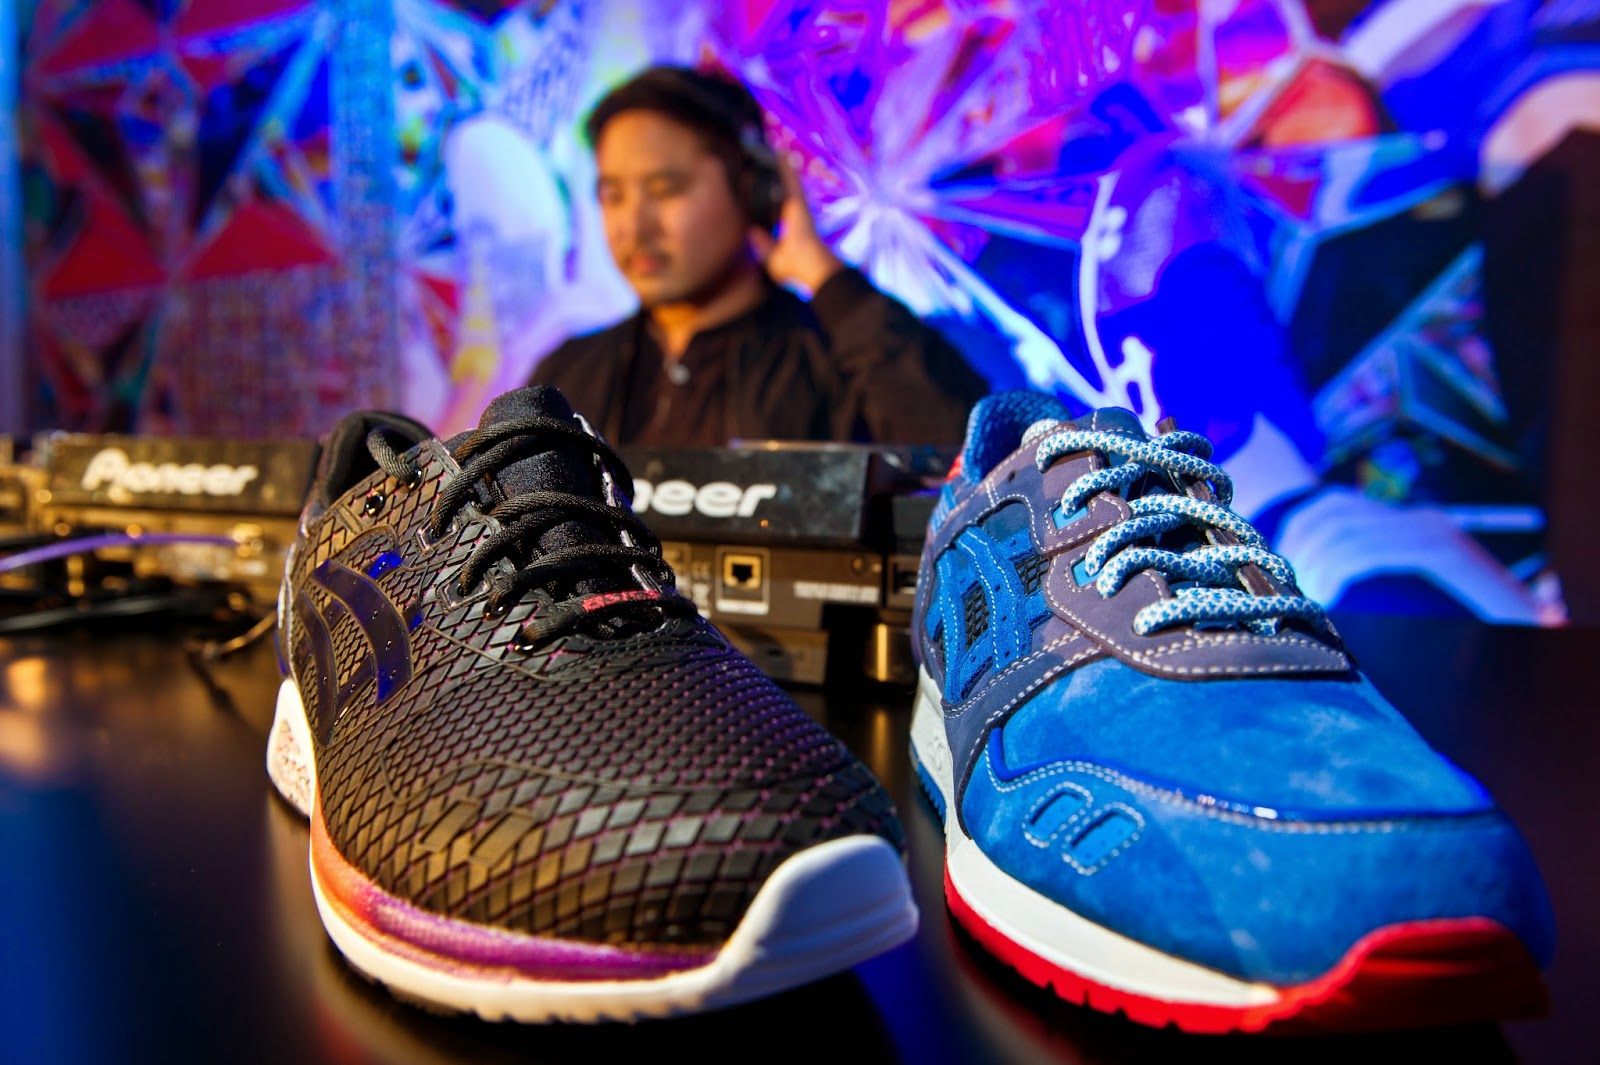 Onitsuka Tiger, Asics, Asics Lifestyle, Asics Tiger, Gel-Lyte III, Gel Saga, lifestyle, sportwear, Suits and Shirts,